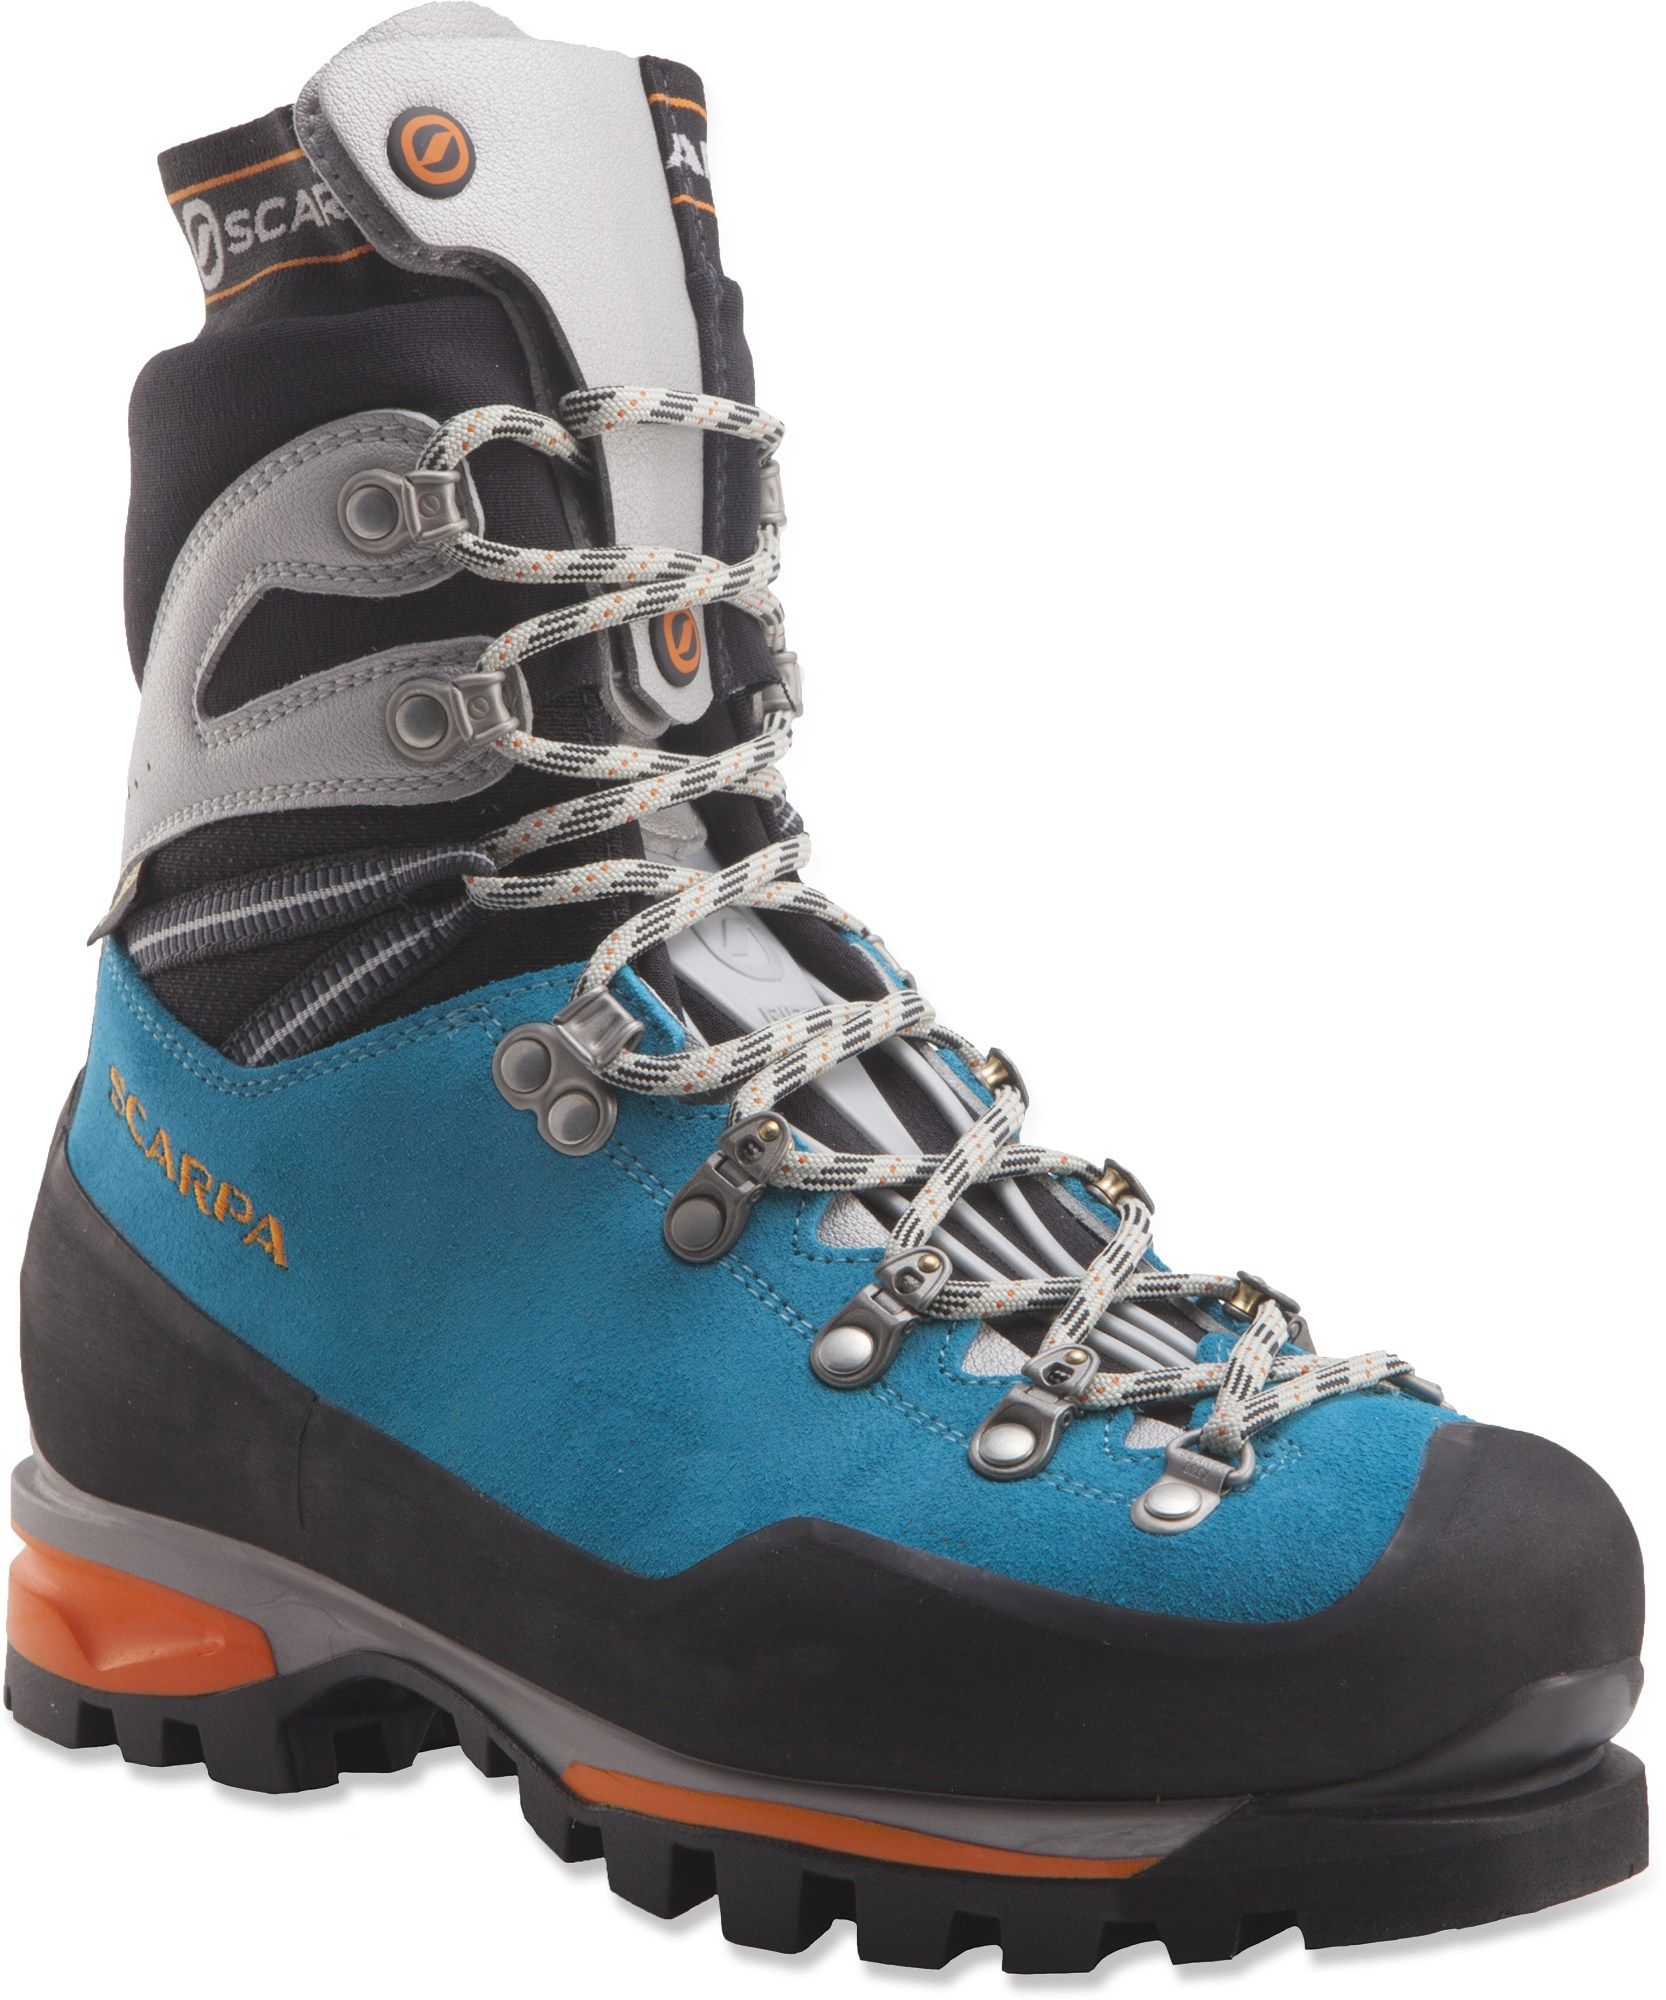 save off 5a839 6a80d Scarpa Female Mont Blanc Pro Gtx Mountaineering Boots - Women s